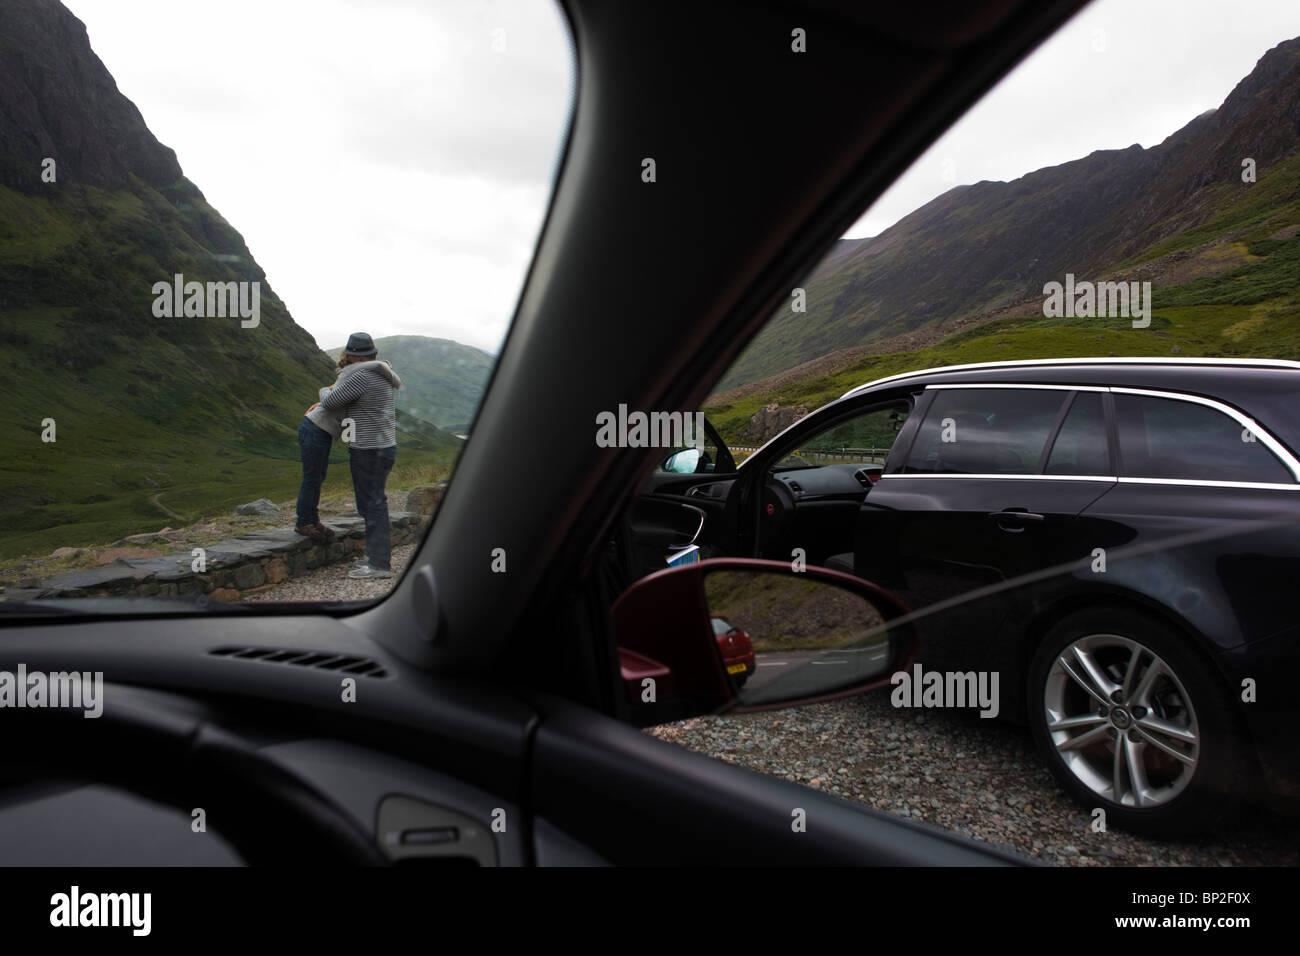 Couple's spontaneous hug during stopped car journey through Glencoe, Scotland. - Stock Image